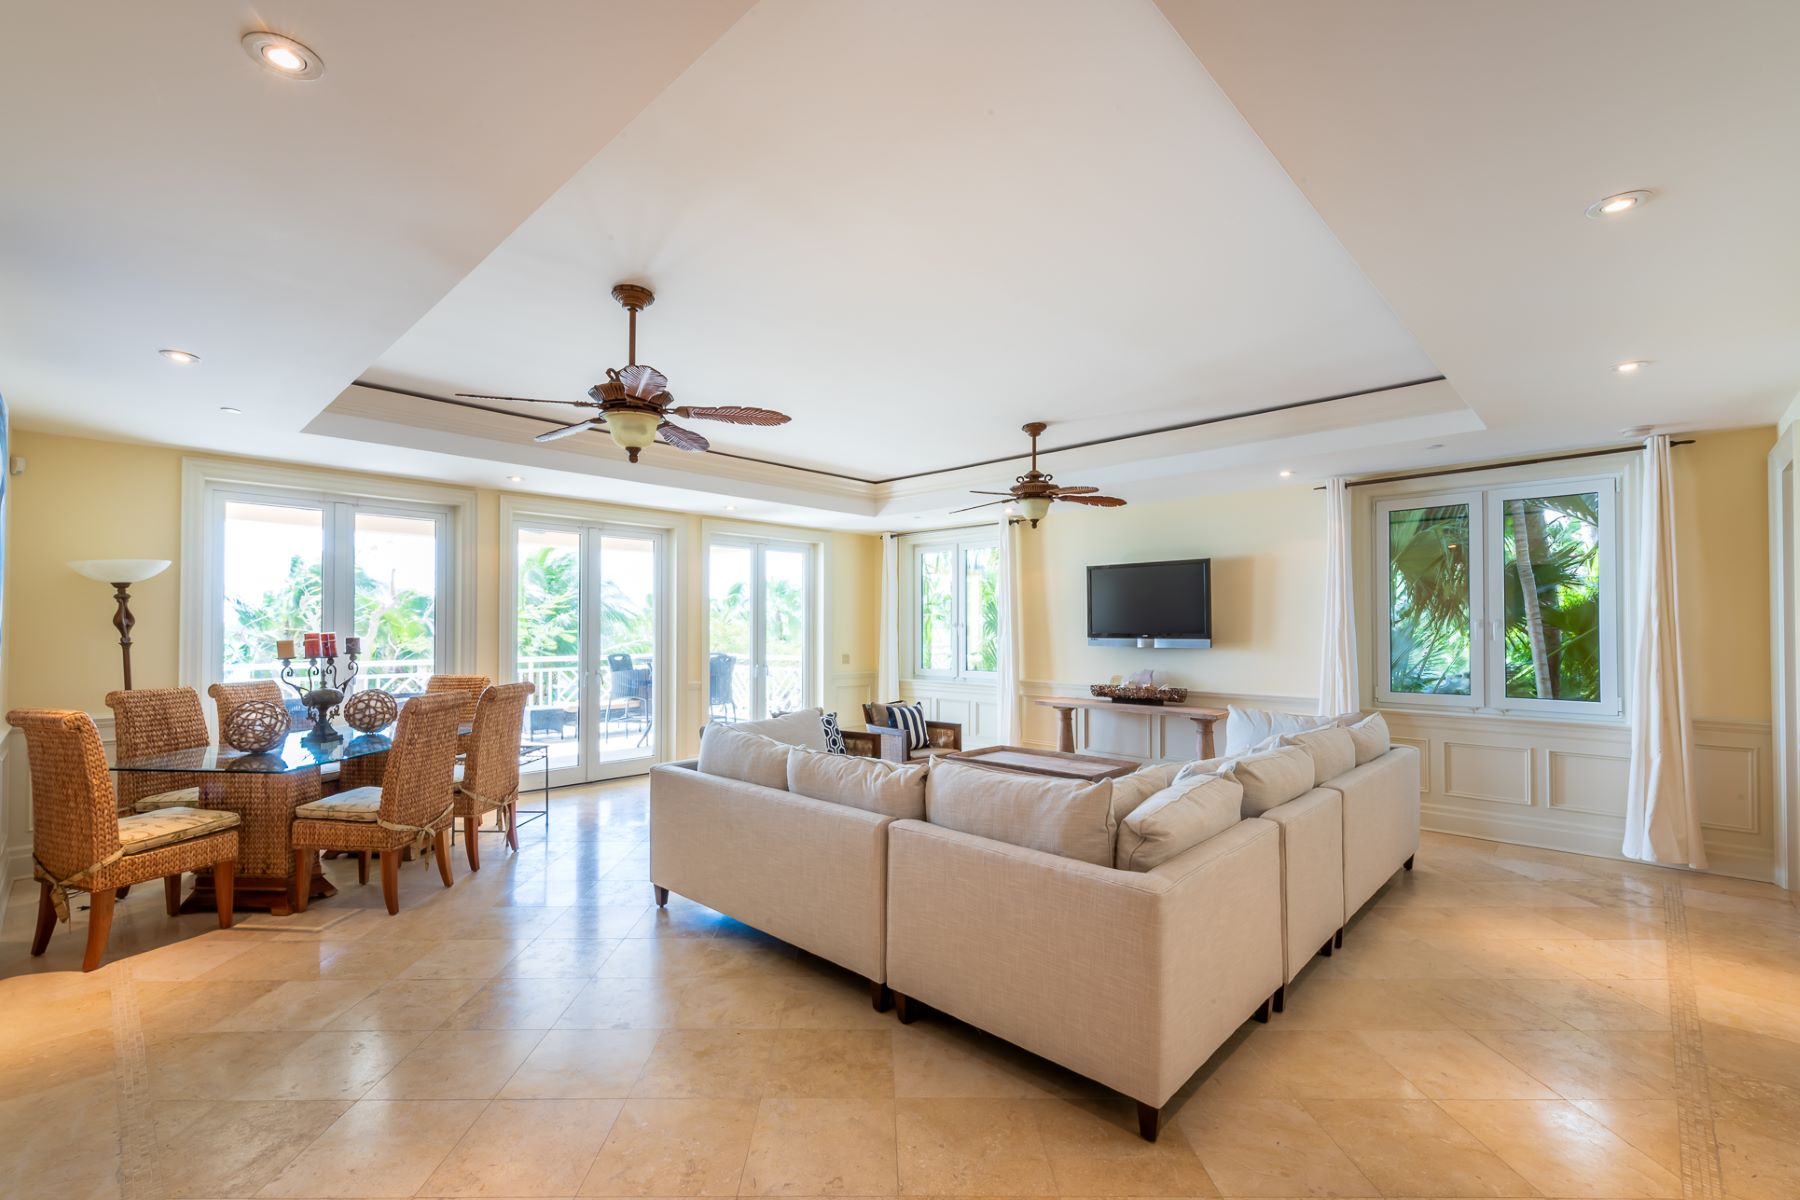 Condominium for Sale at Ocean Club Residences & Marina A2.4 Ocean Club Residences And Marina, Paradise Island, Nassau And Paradise Island Bahamas